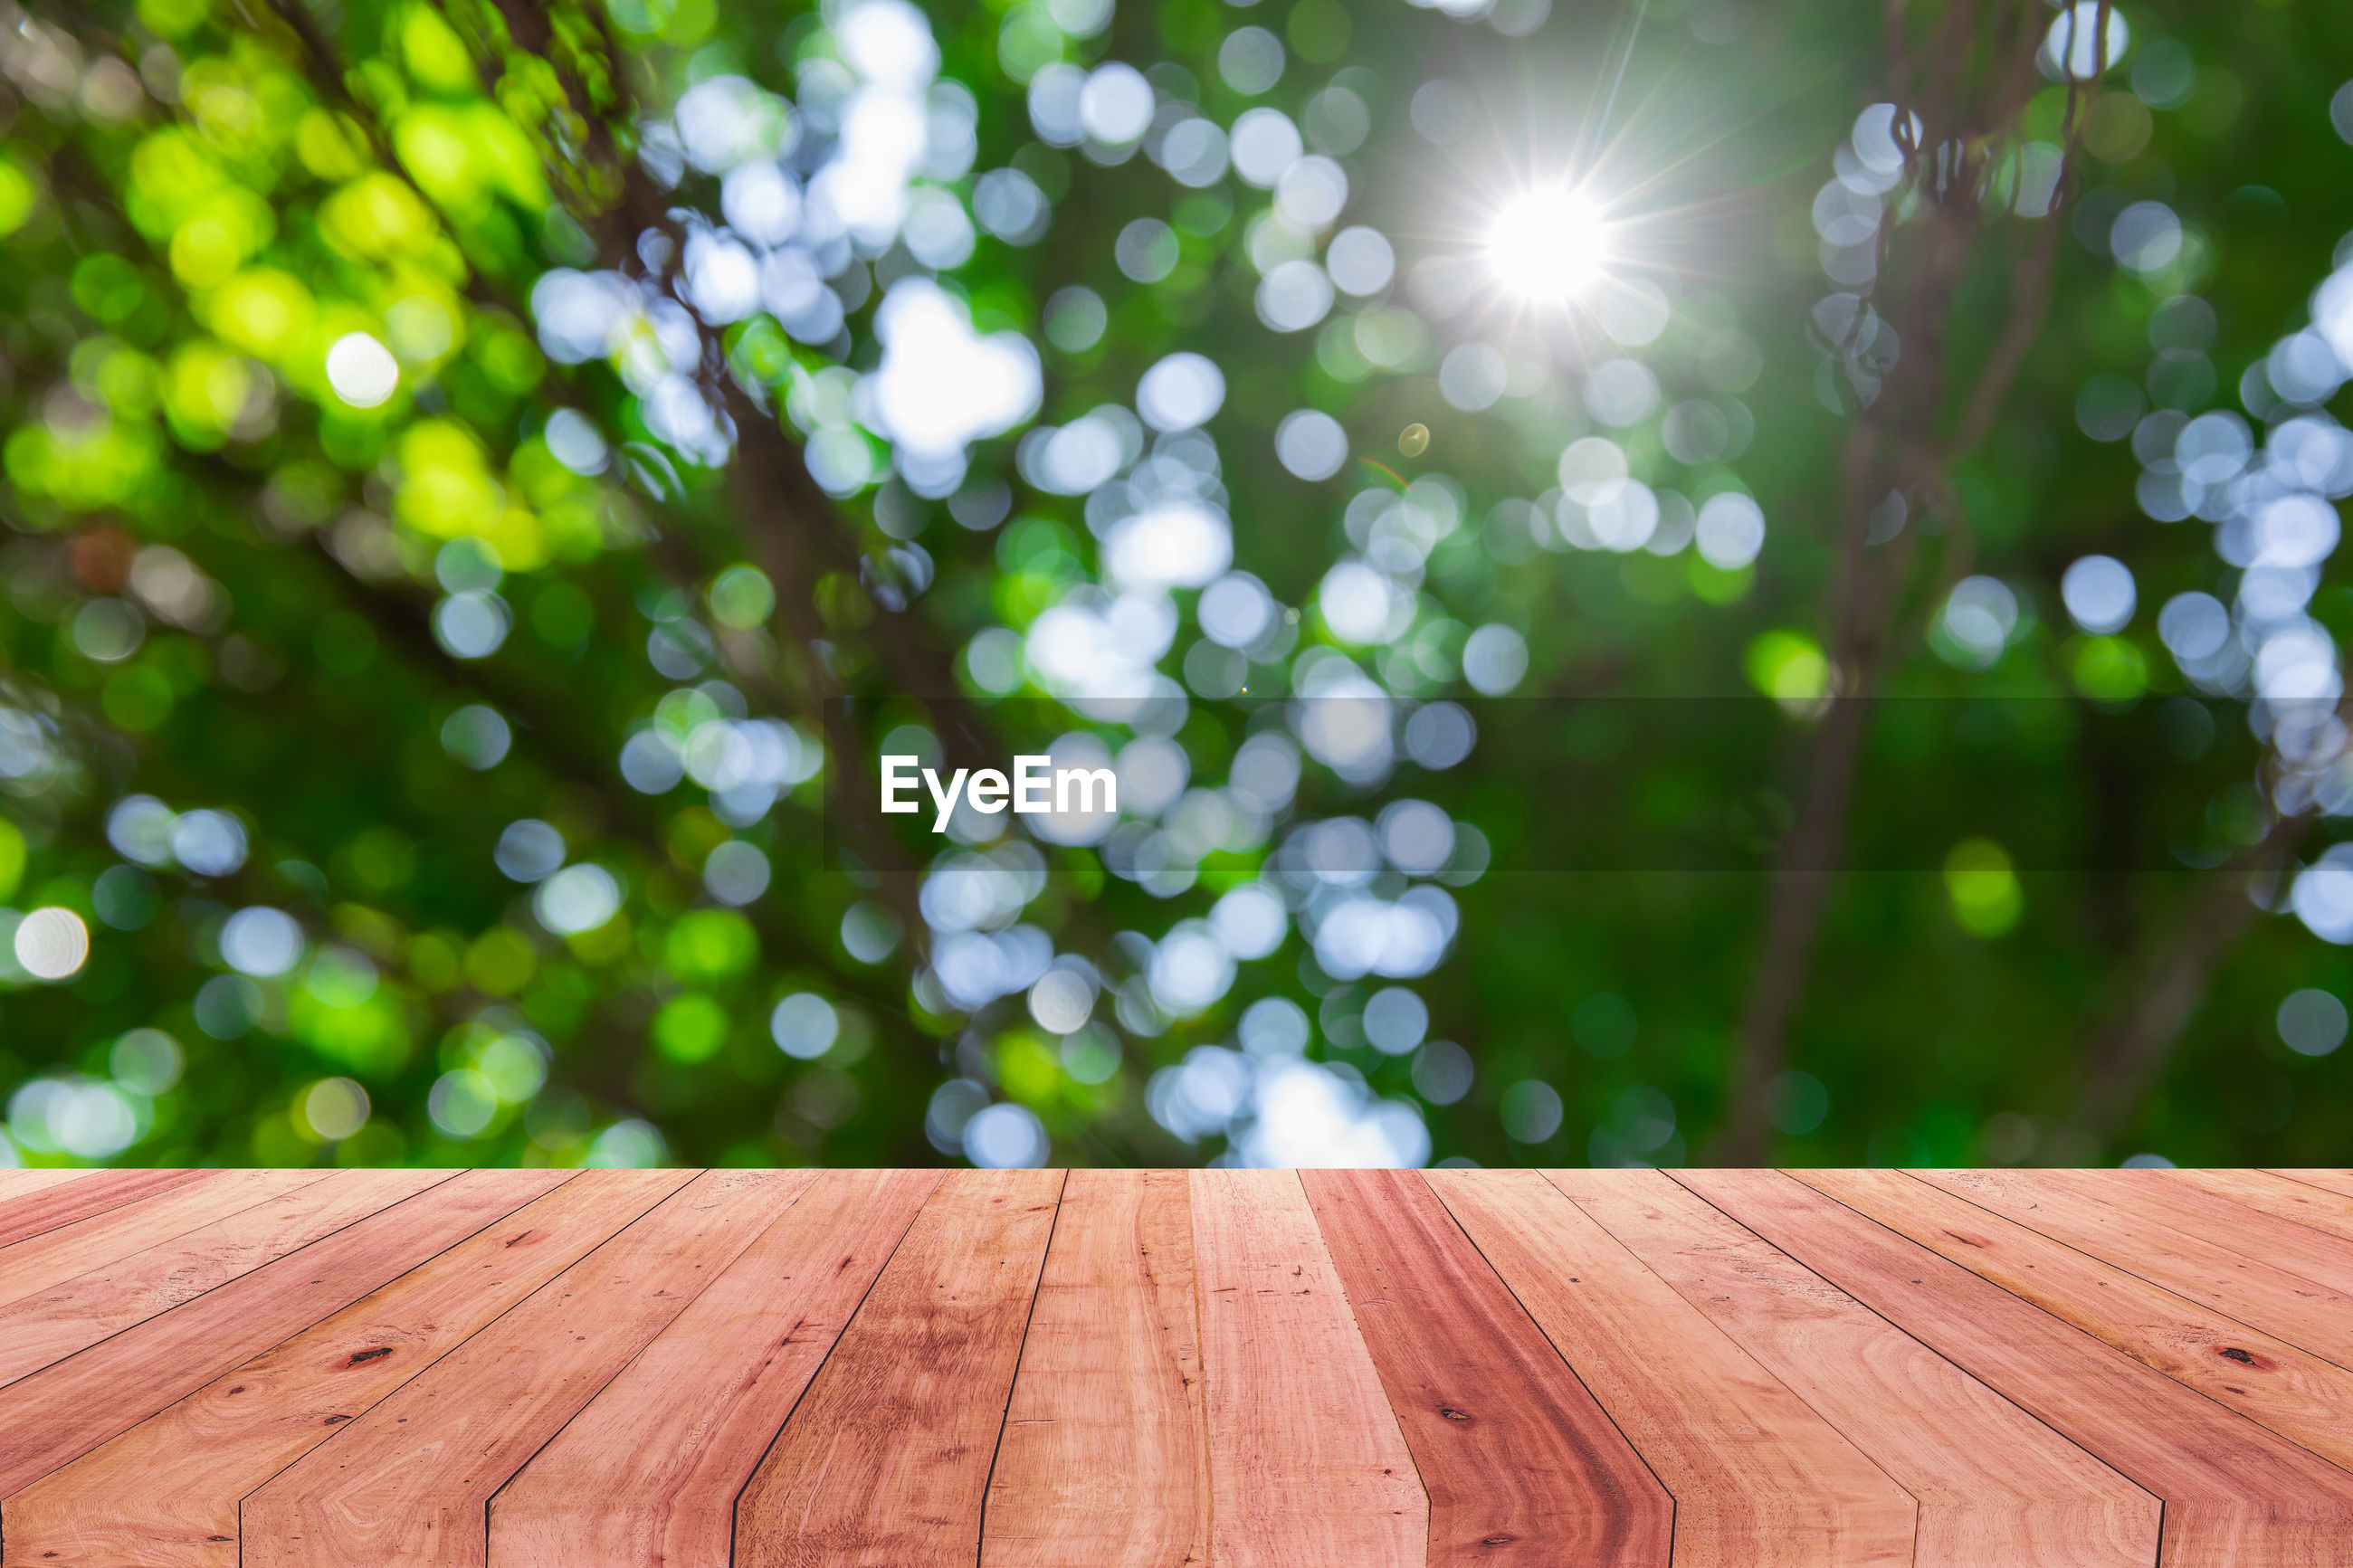 LOW ANGLE VIEW OF WOODEN TABLE ON TREE